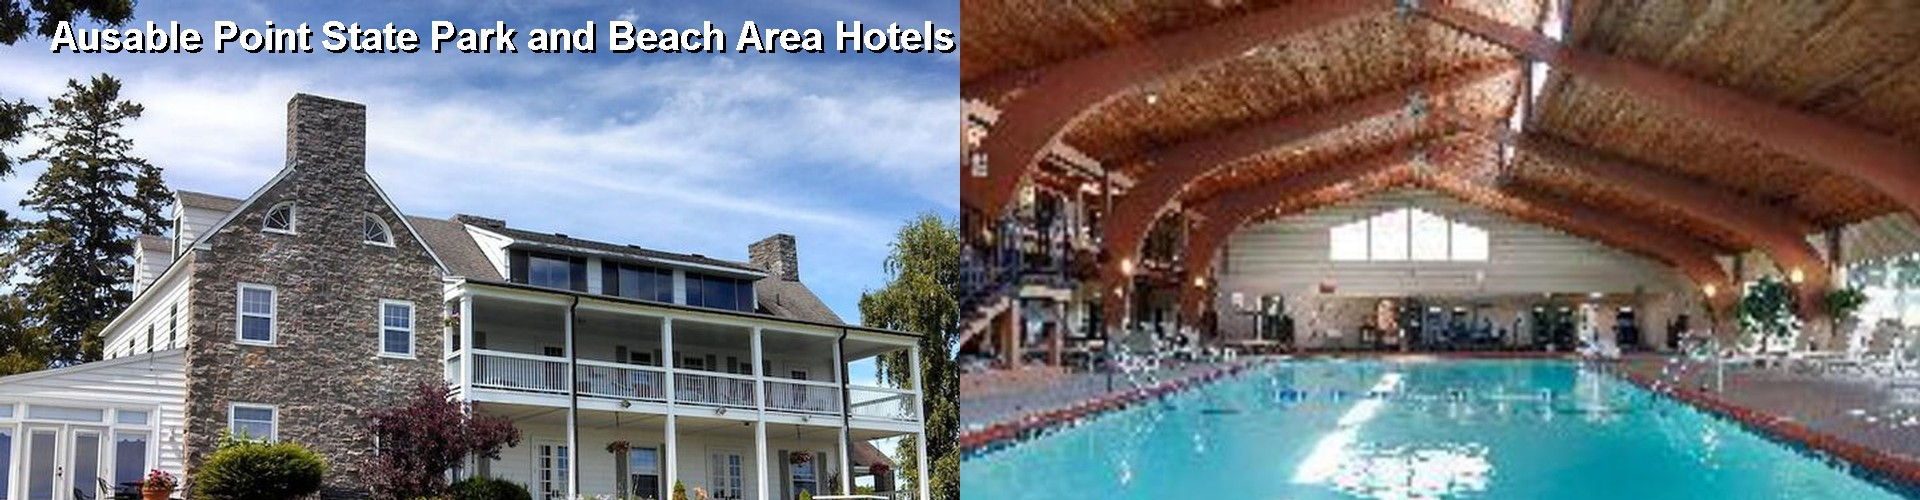 5 Best Hotels near Ausable Point State Park and Beach Area